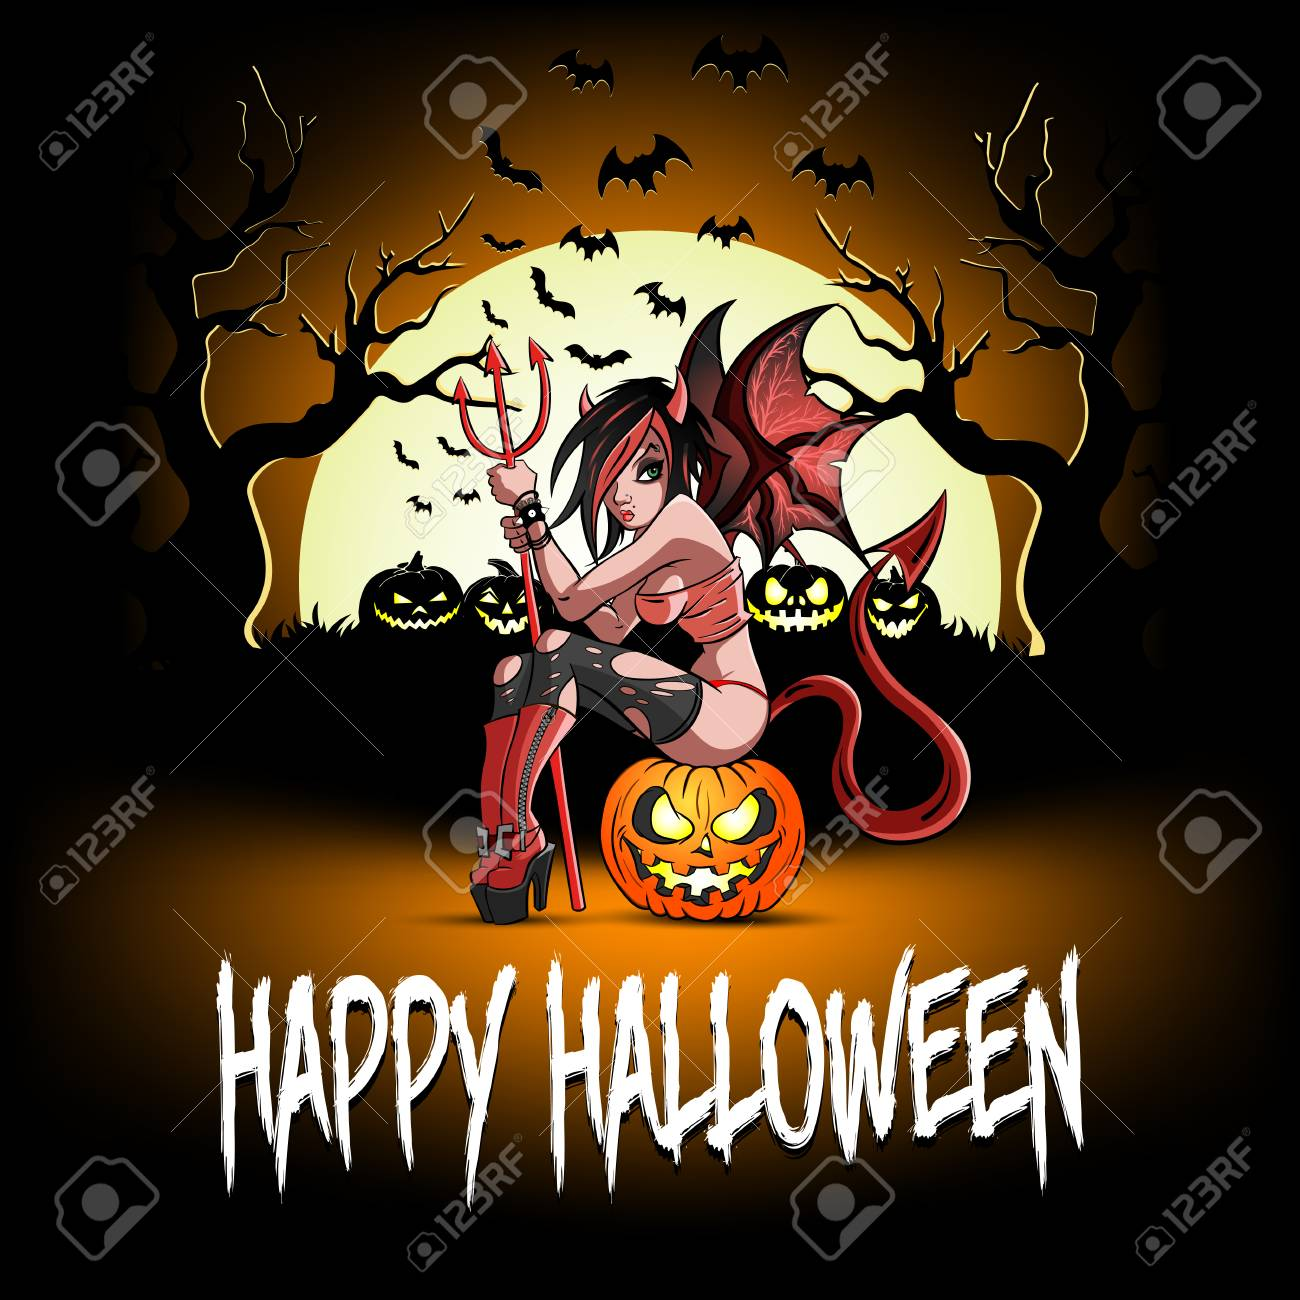 Happy Halloween. Sexy devil girl sitting on a halloween pumpkin on the background of an ominous forest. Design pattern for banner, poster, greeting card, flyer, party invitation. Vector illustration - 110973713